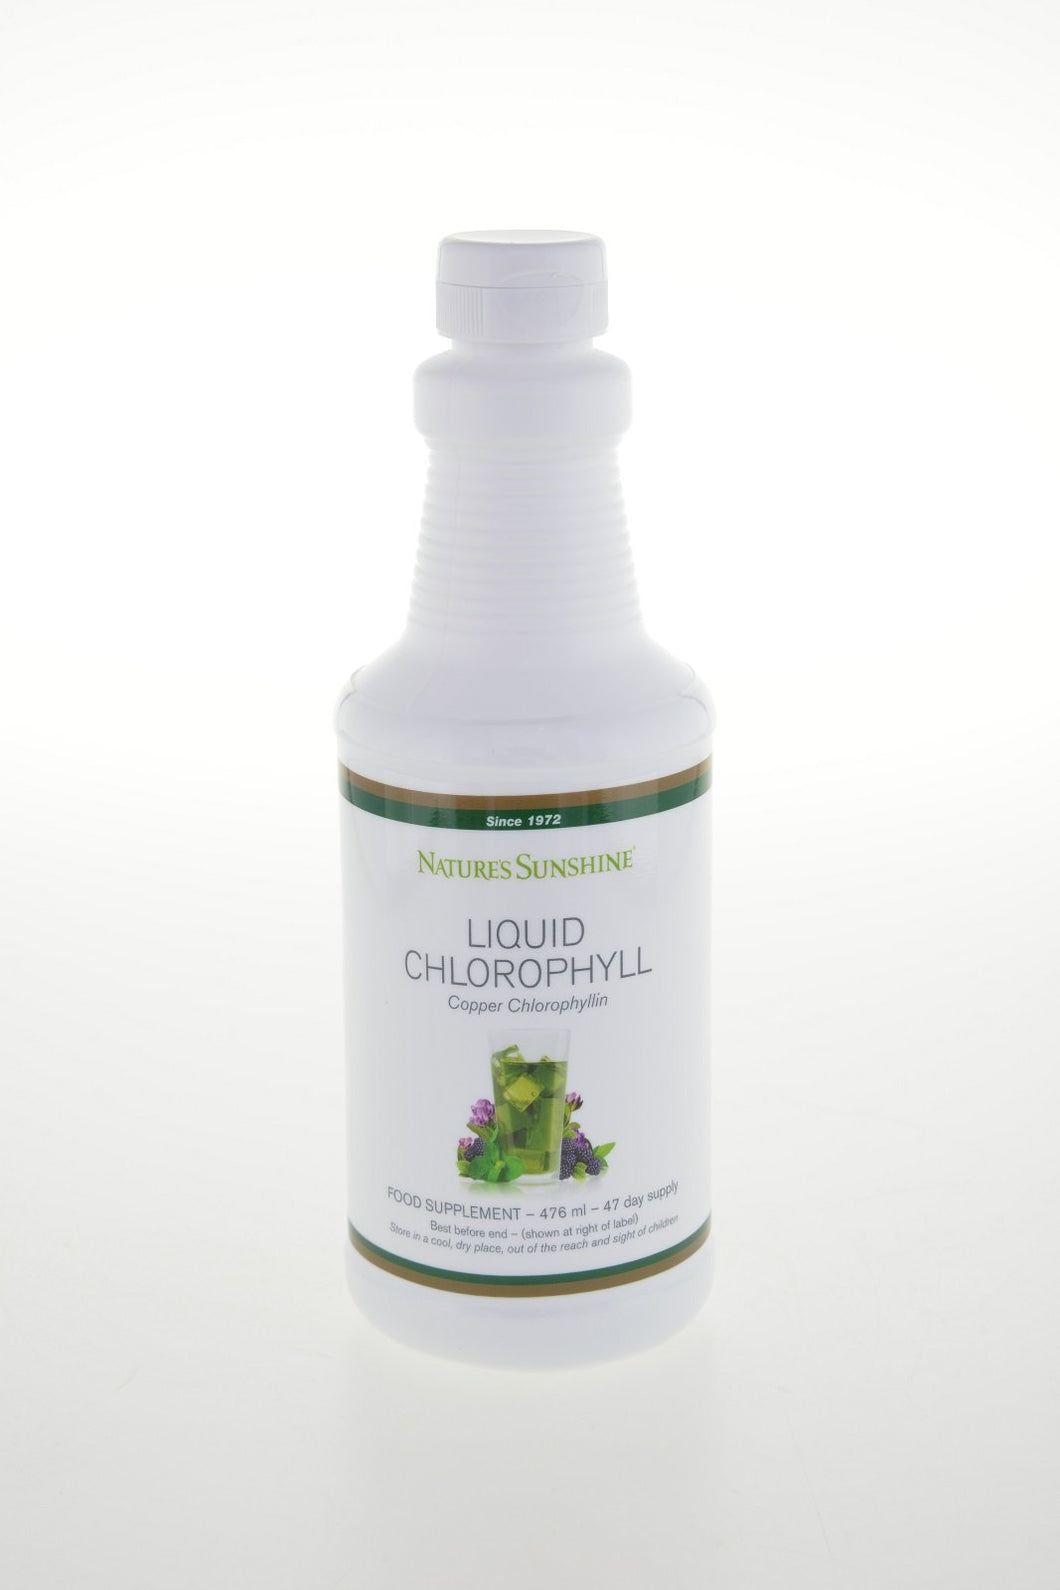 Nature's Sunshine Liquid Chlorophyll (476ml)